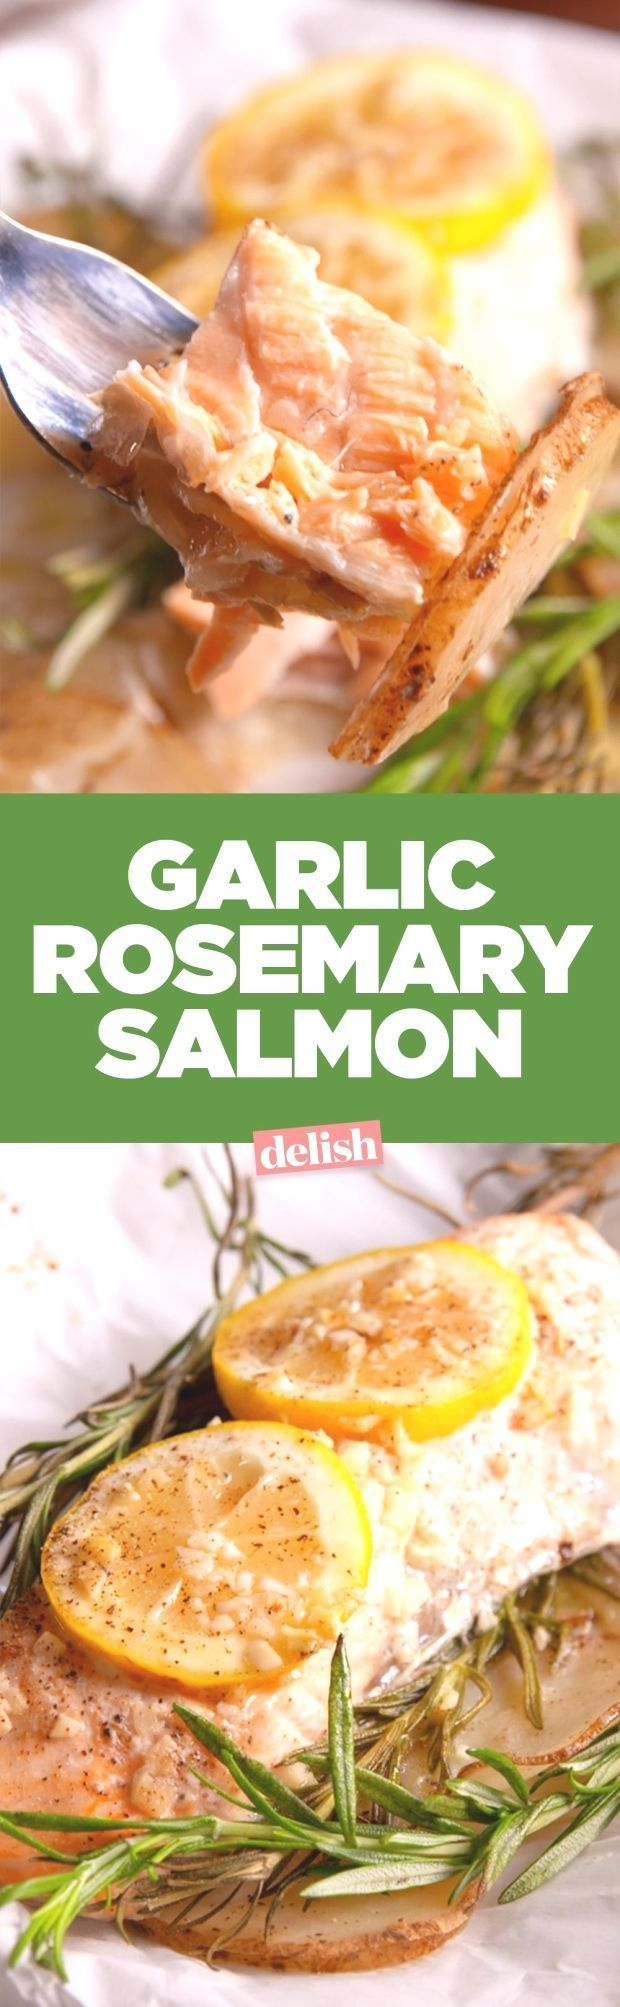 This garlic rosemary salmon is the fancy dinner you can actually make at ho... This garlic rosema